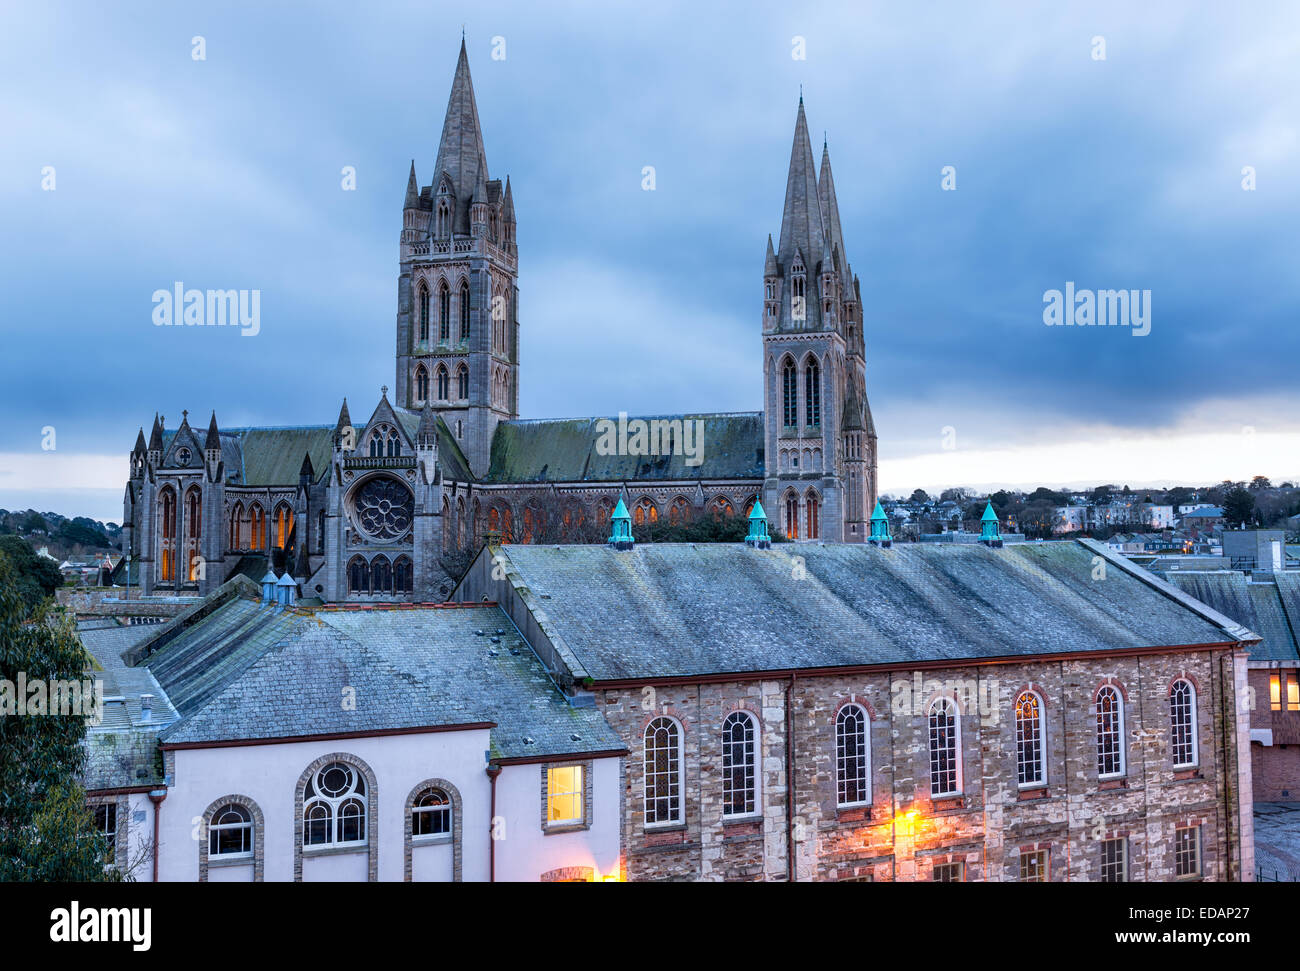 Looking out over the rooftops to Truro Cathedral - Stock Image